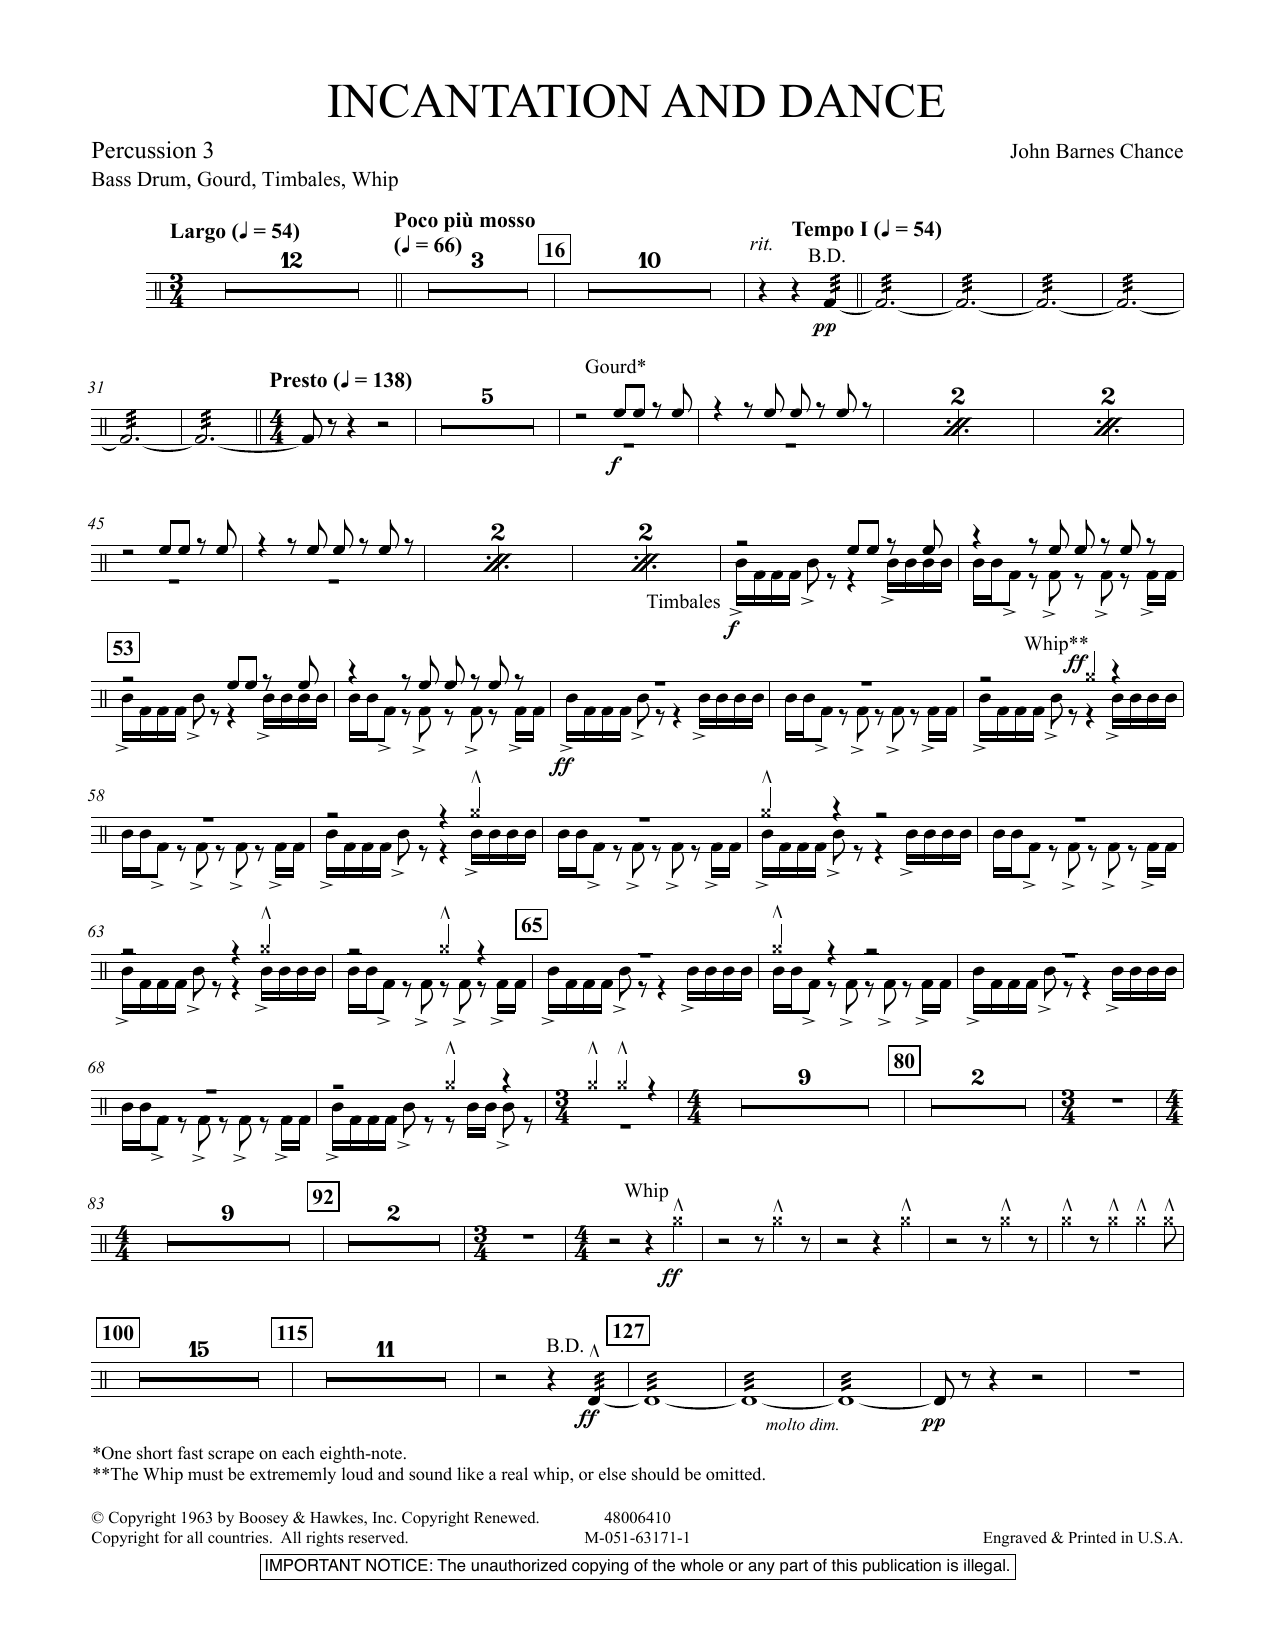 Incantation and Dance - Percussion 3 (Concert Band)